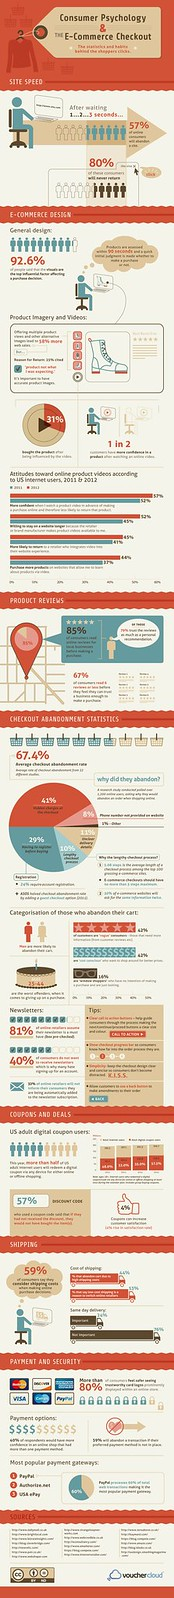 e-commerce check out infographic